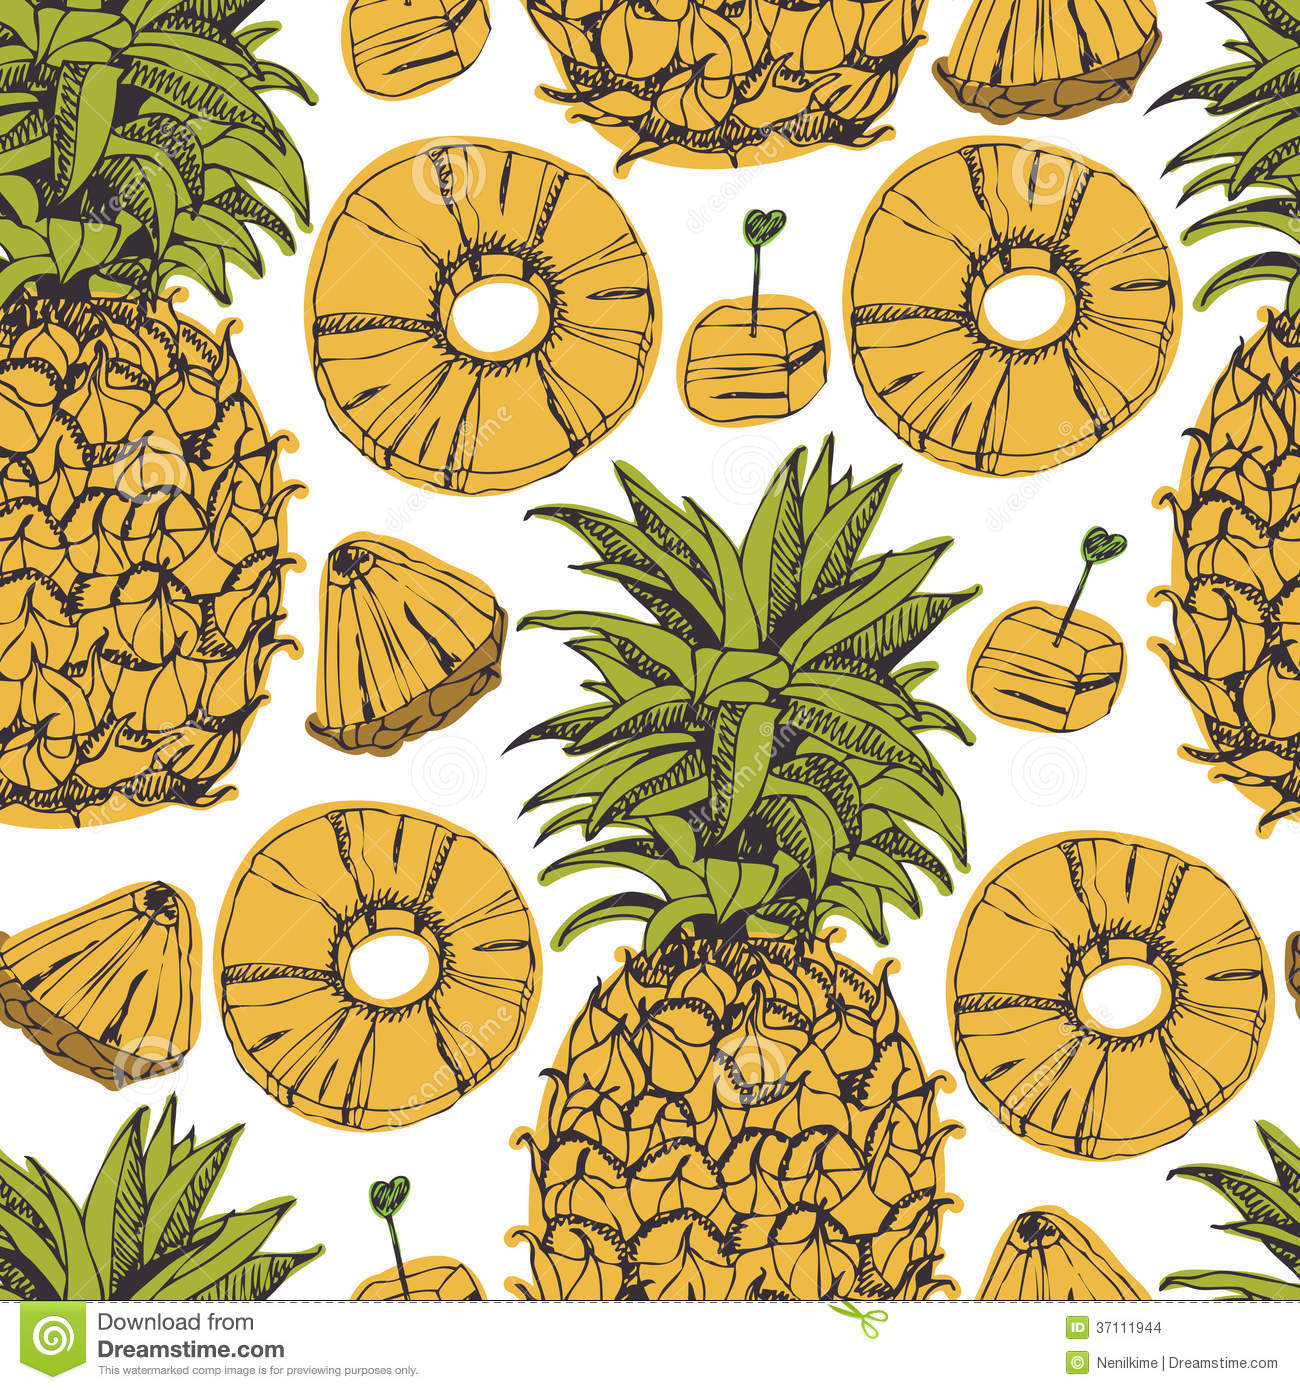 Pineapple Background Stock Images - Image: 37111944